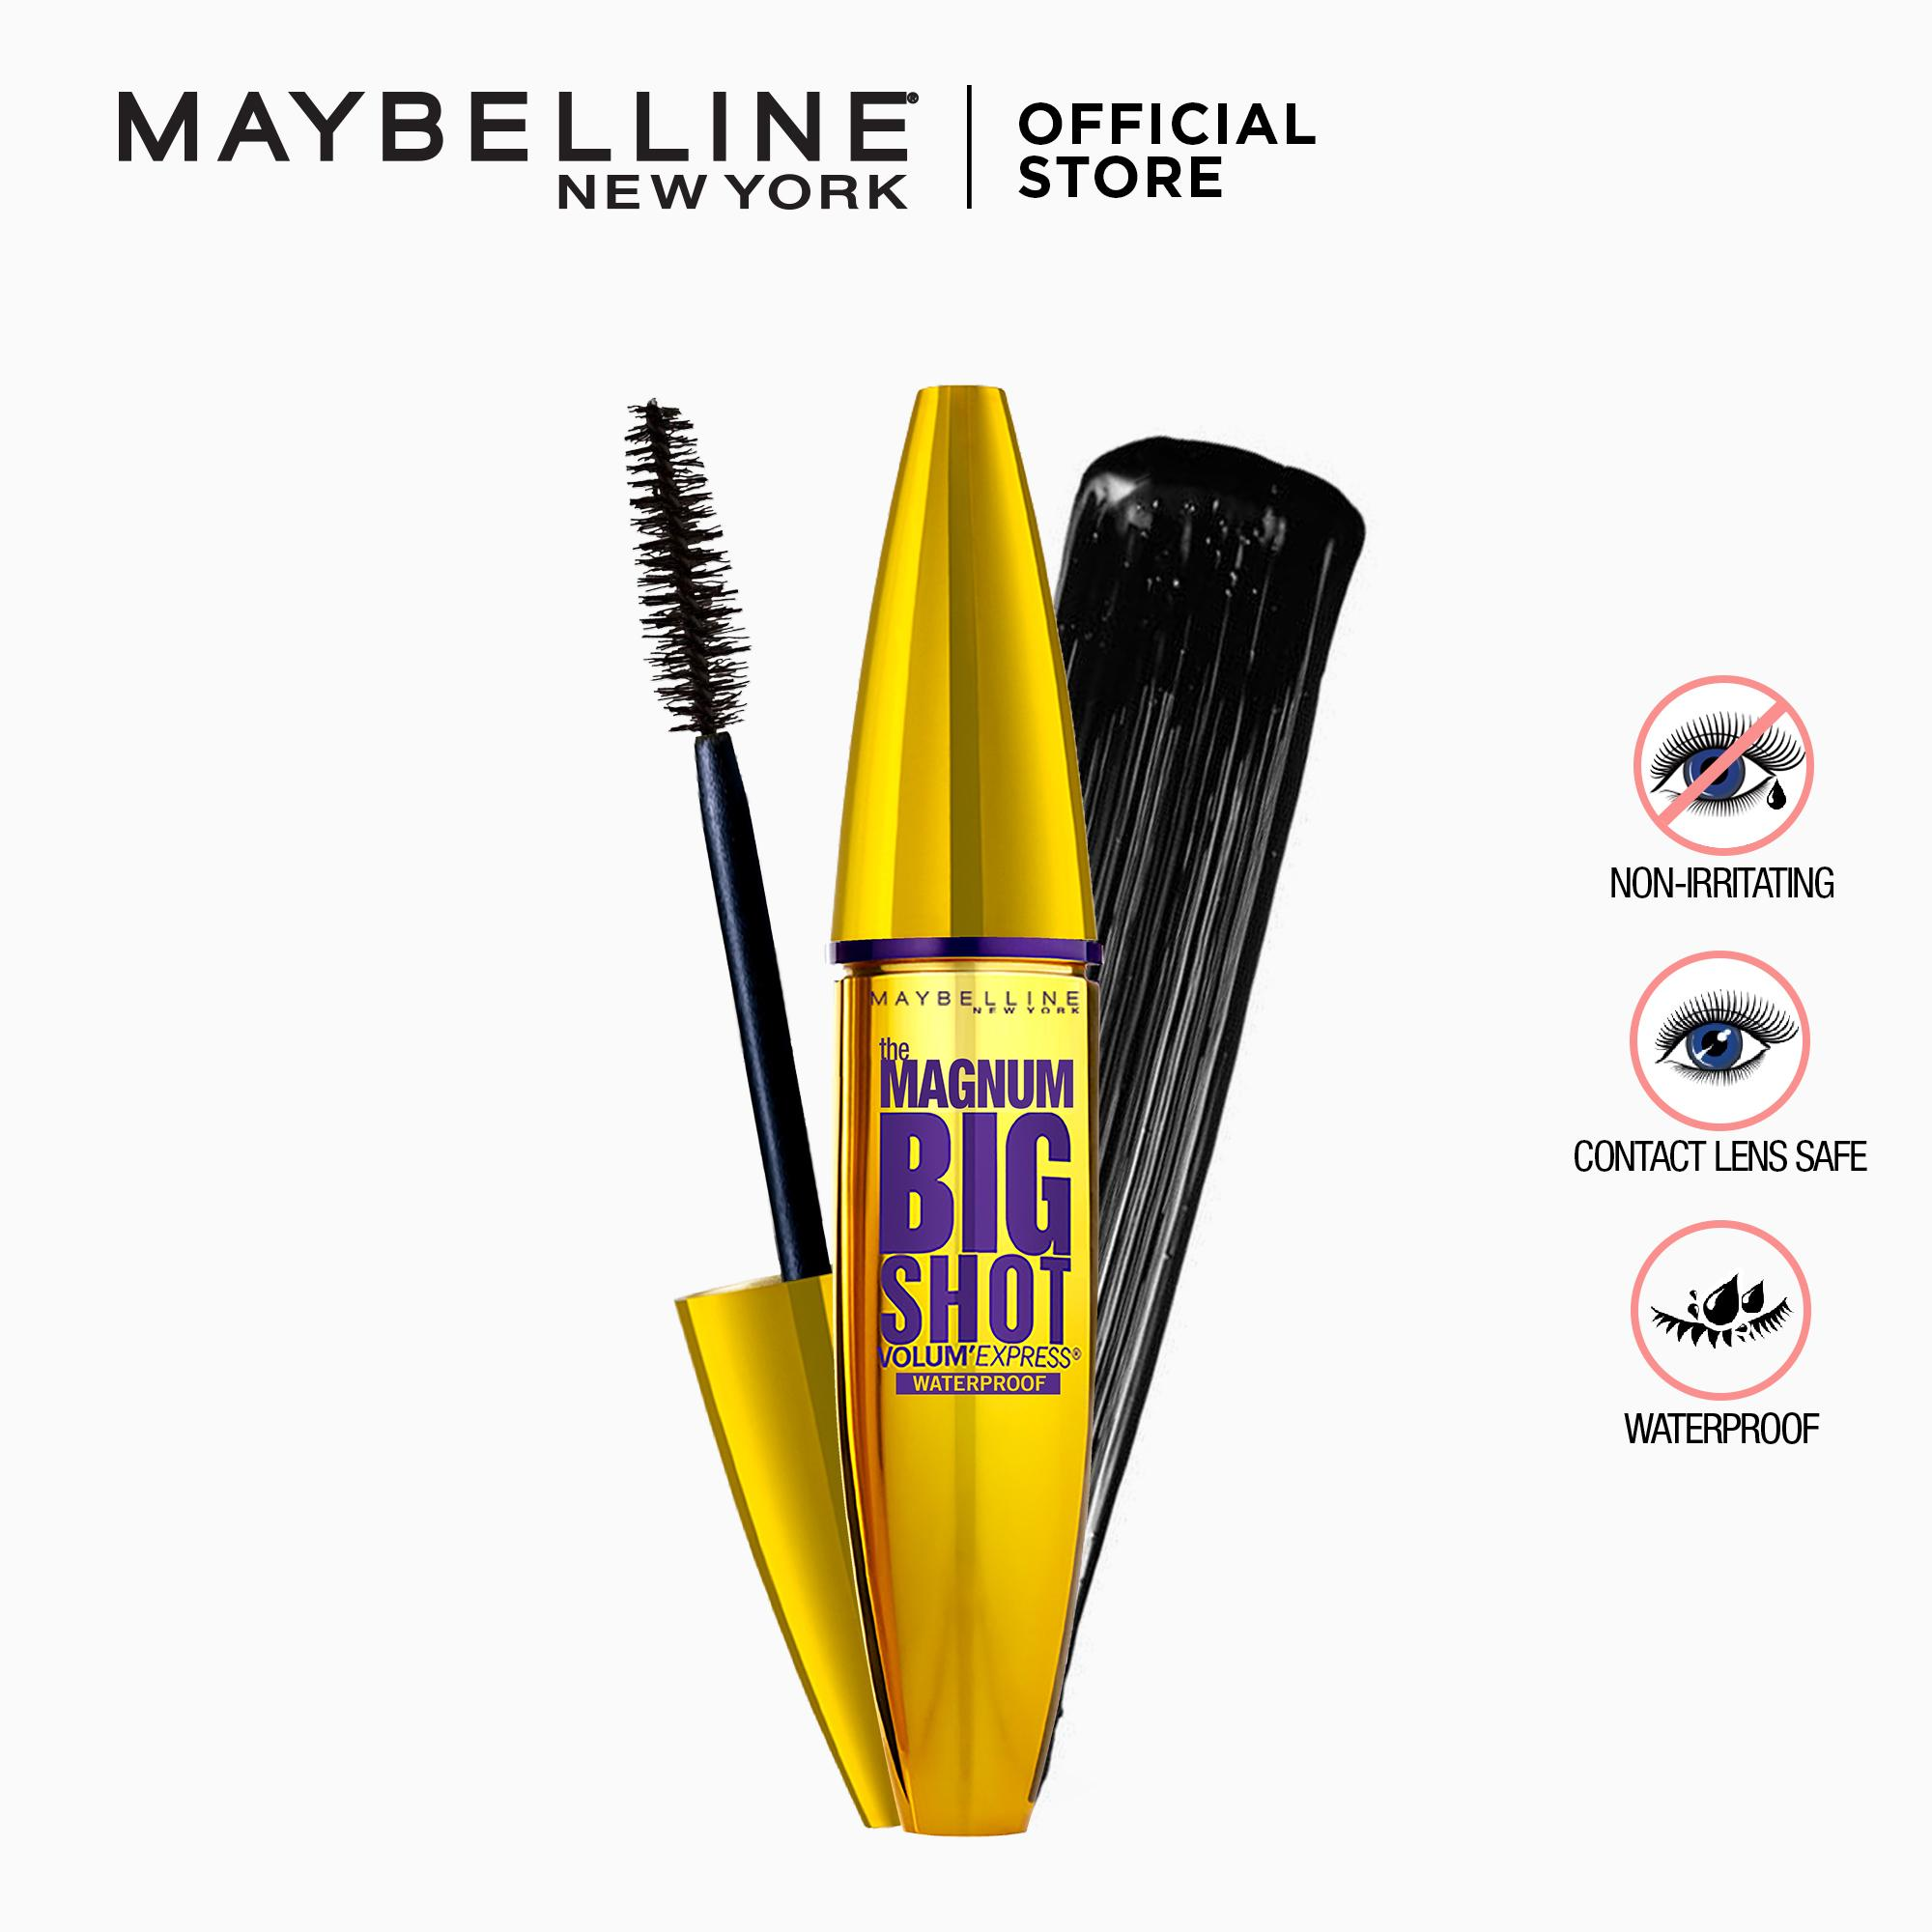 9010ab90c5d Maybelline Official Store - Buy Maybelline Official Store at Best Price in  Philippines | www.lazada.com.ph